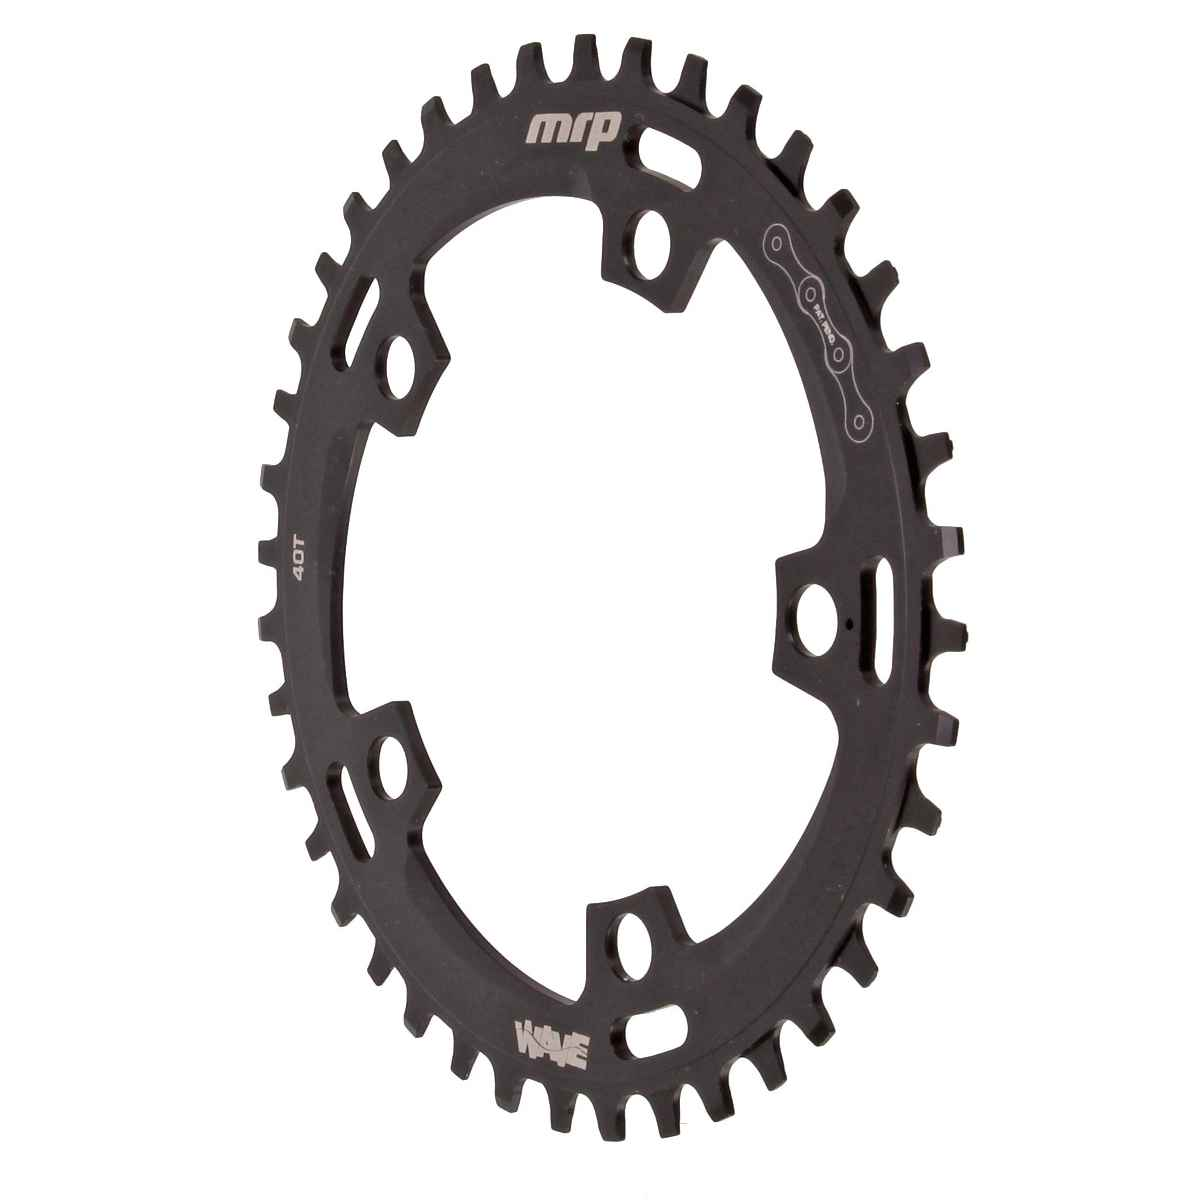 MRP Wave Cx Chainring, 110 BCD40T - Black - 23-1-040